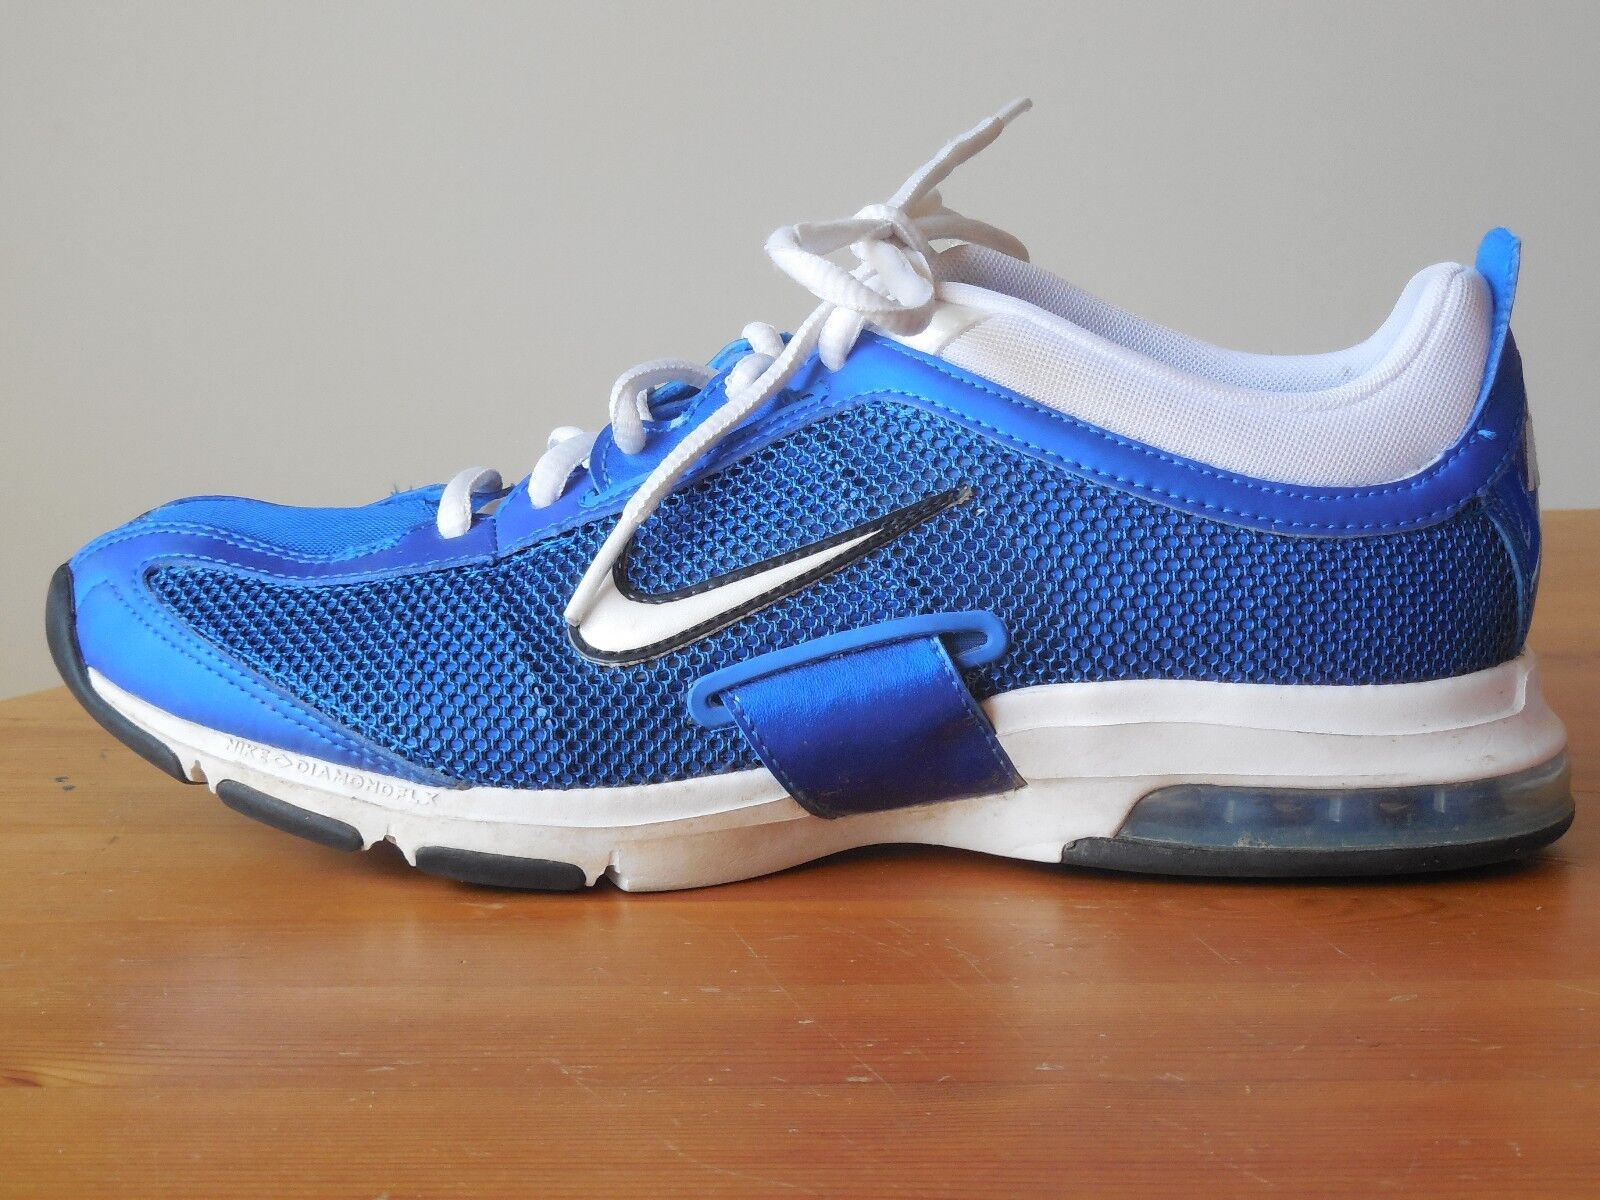 Nike Training Air Max Essential Trainer Mens US Comfortable The most popular shoes for men and women